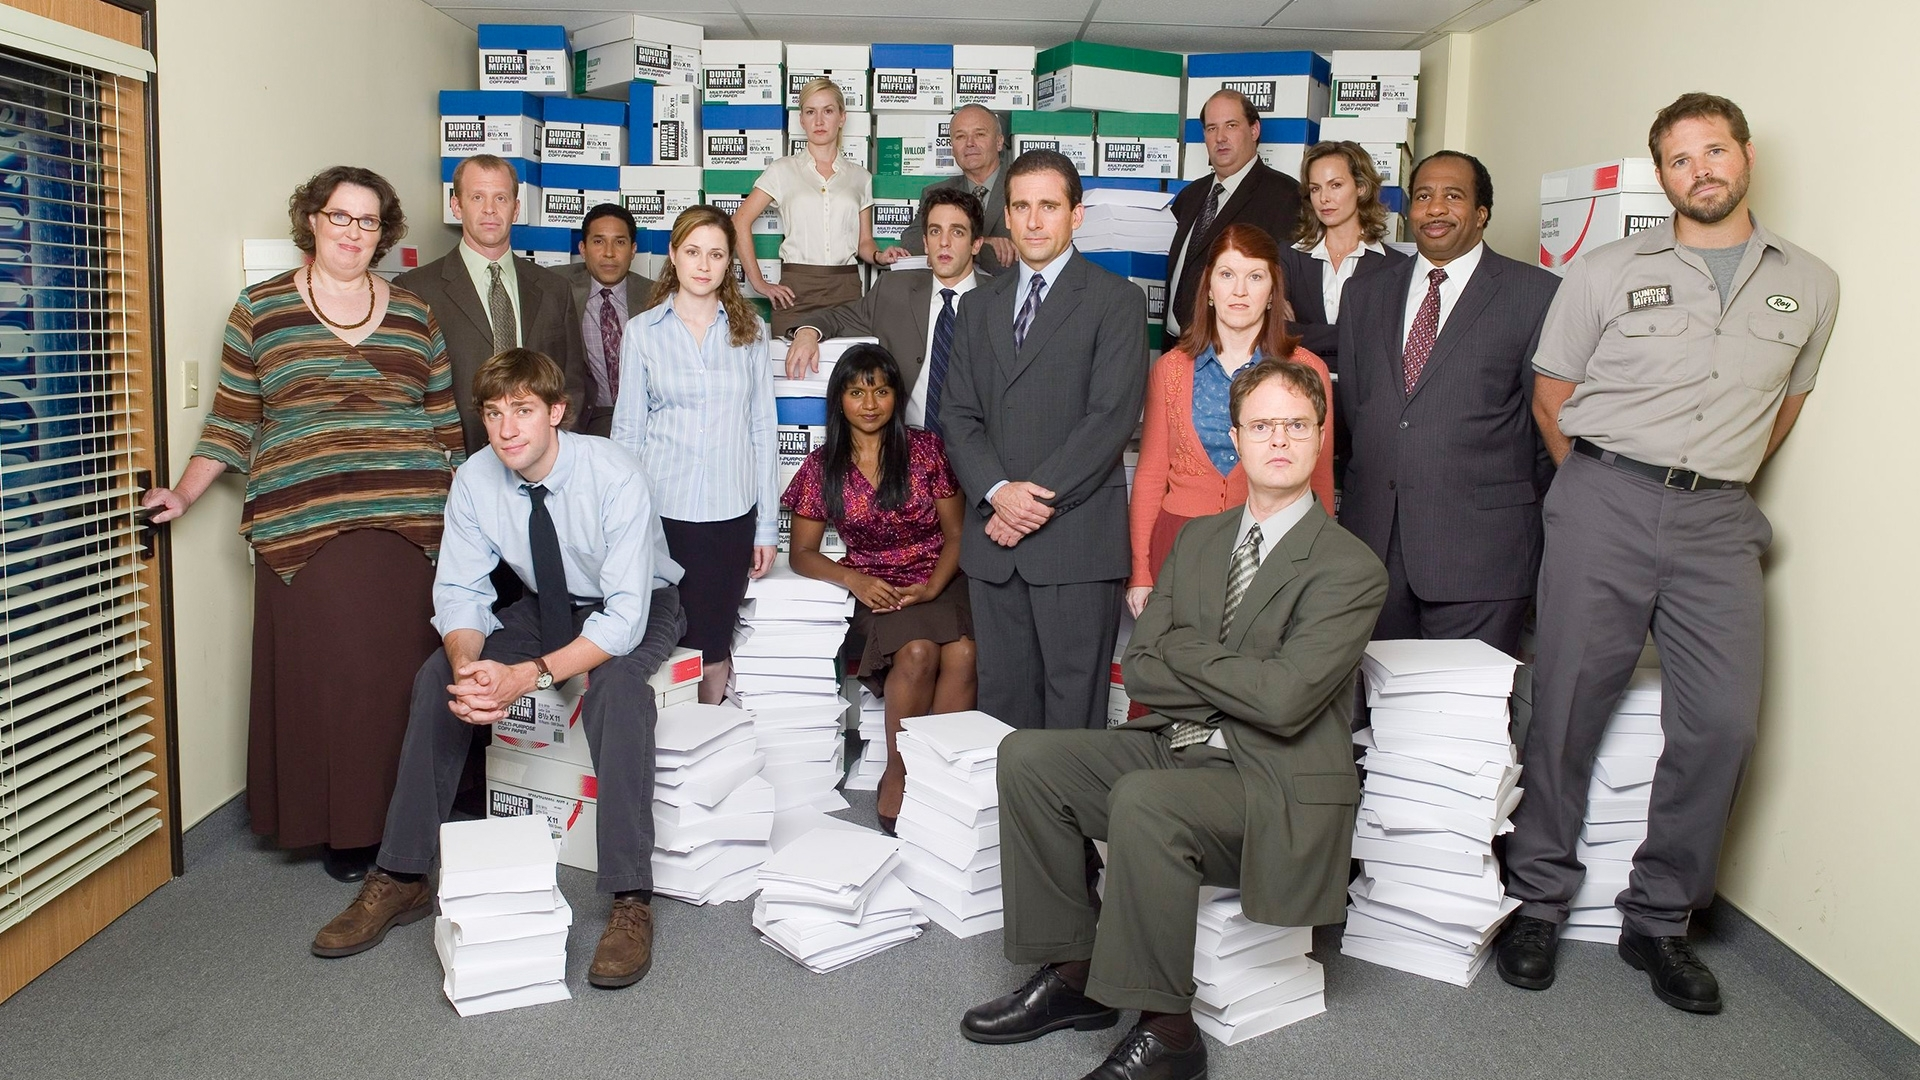 10 Most Popular The Office Wallpaper Hd FULL HD 1920×1080 For PC Background